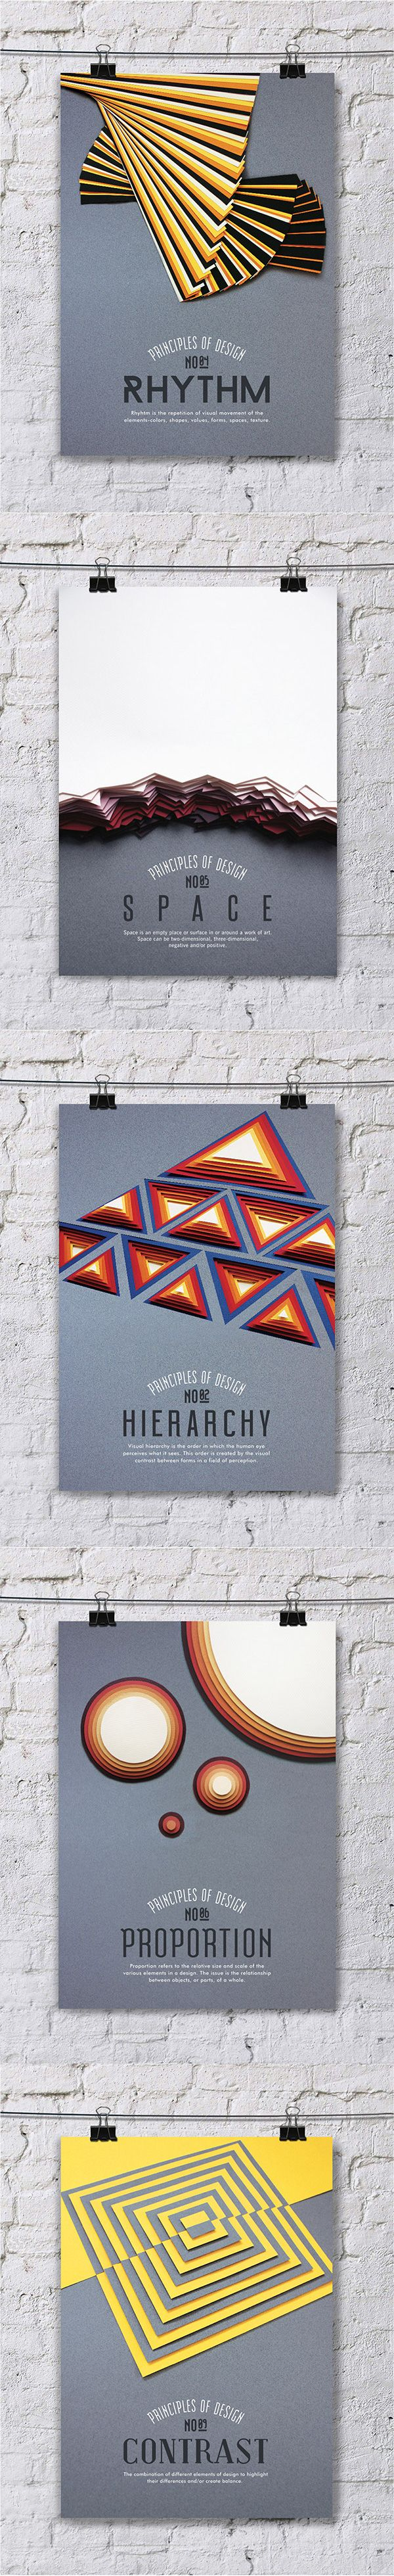 Poster design layout principles - Find This Pin And More On Layout Ideas Principles Of Design Poster